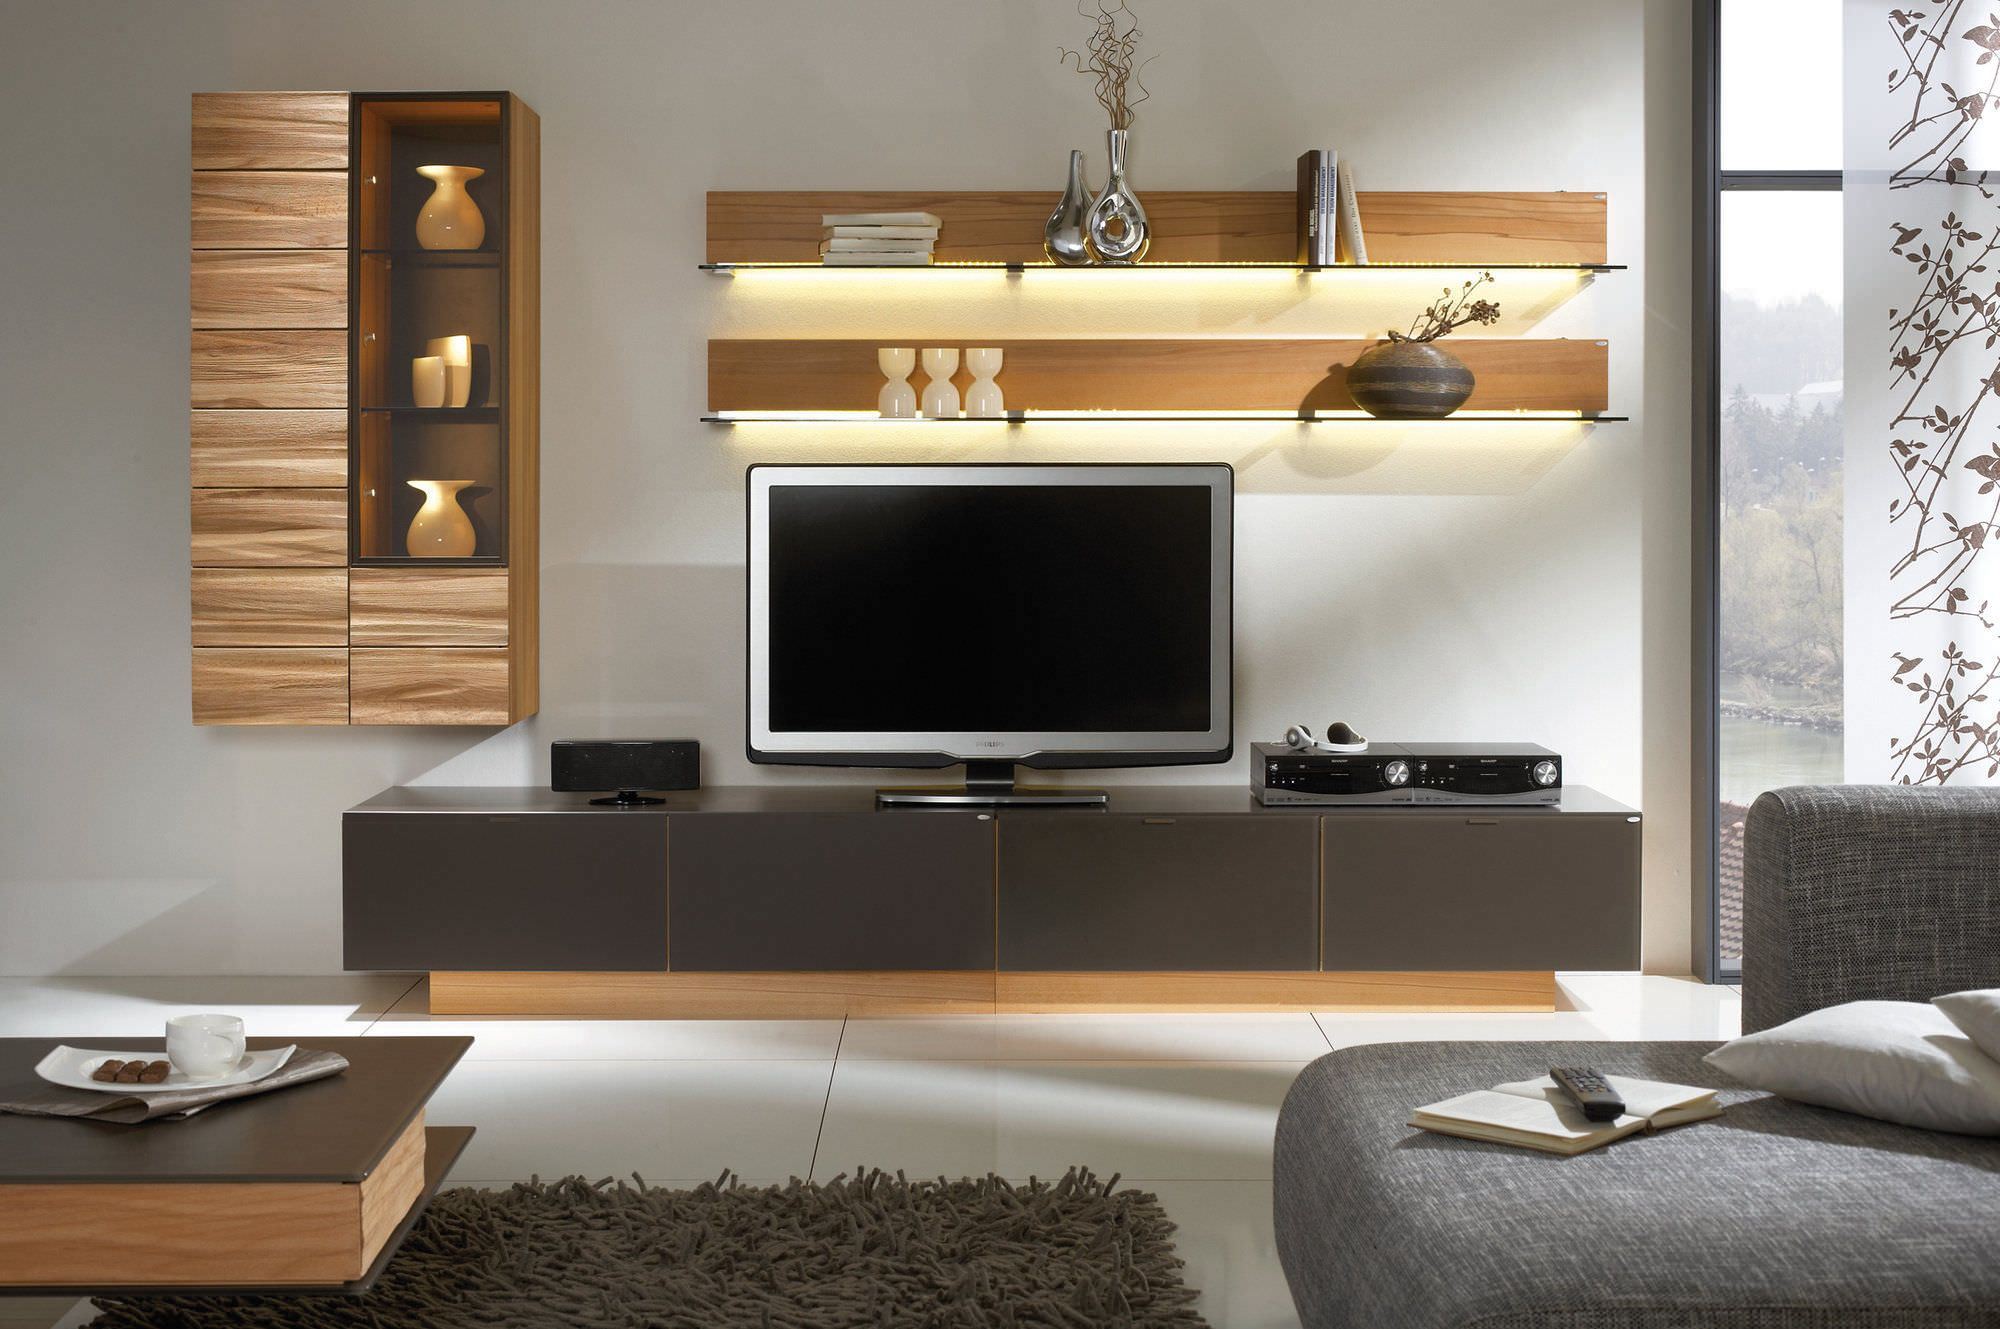 Tv Unit Designs With Storage Awesome White Brown Wood Glass Cool Design Contemporary Wall